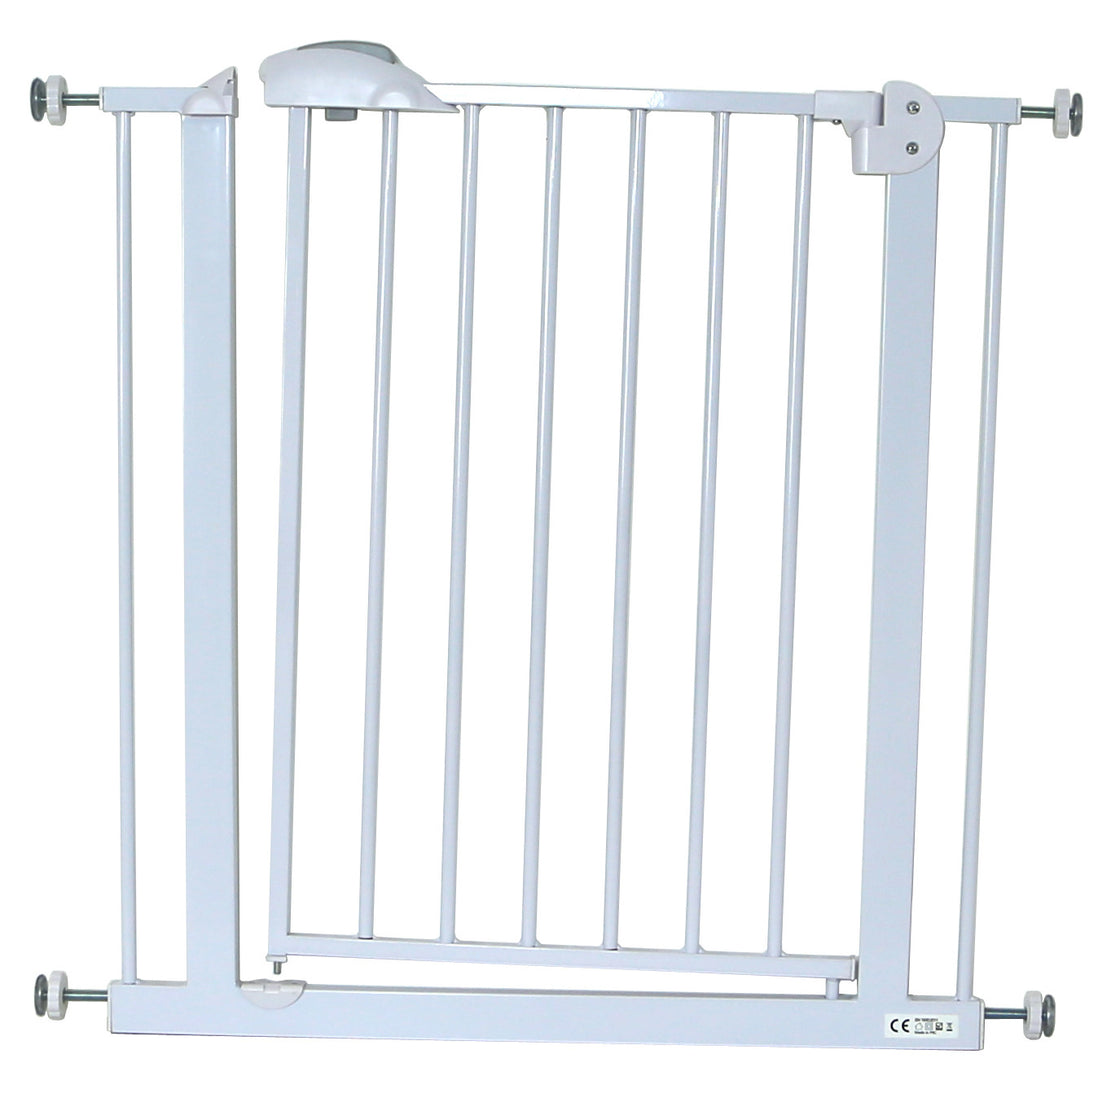 Stair Metal Gate Safety Baby Toddler Simply Auto Close Door Pressure Fit White